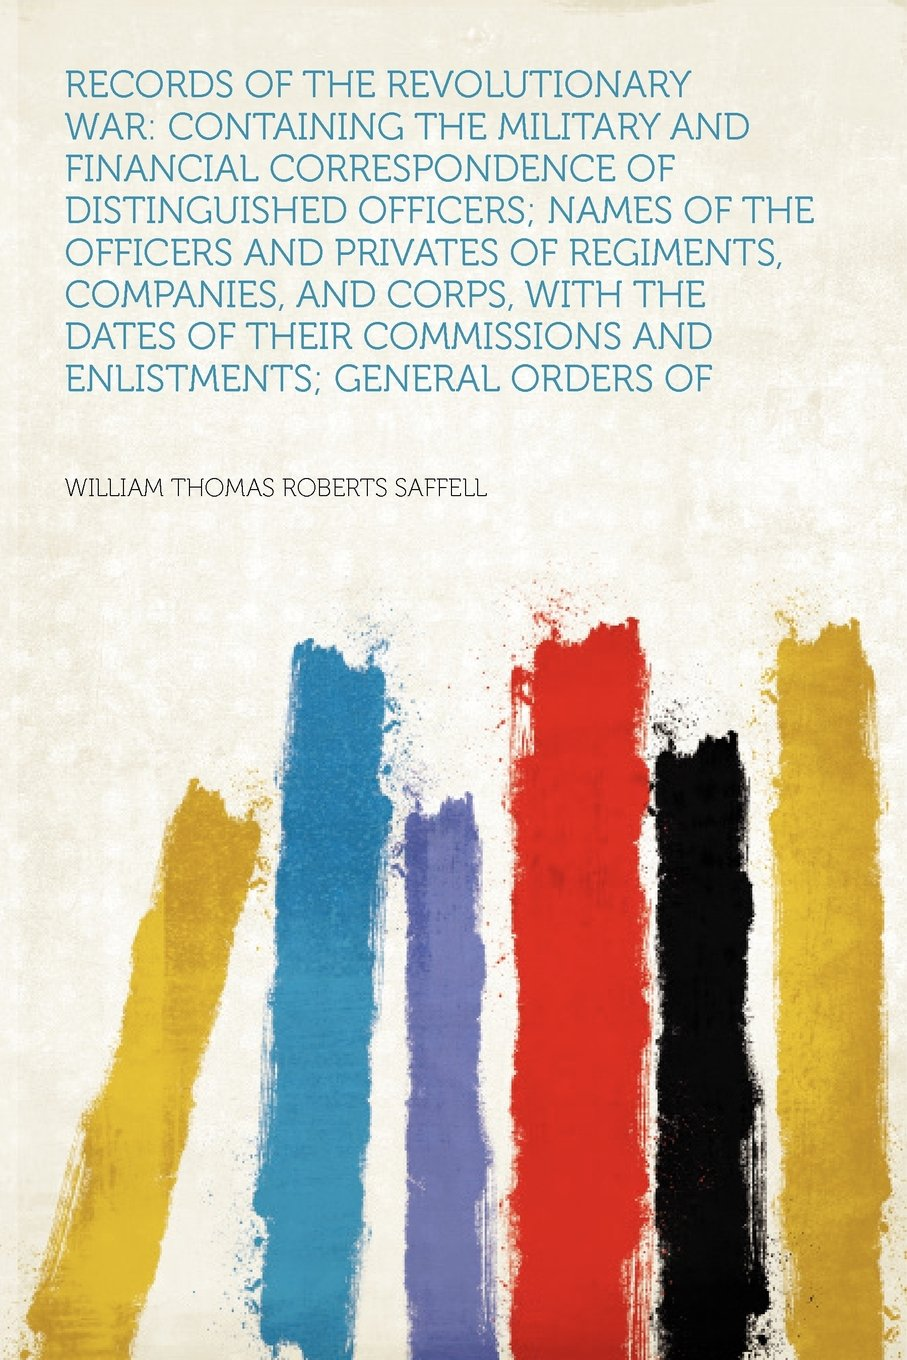 Records of the Revolutionary War: Containing the Military and Financial Correspondence of Distinguished Officers; Names of the Officers and Privates Commissions and Enlistments; General Orde